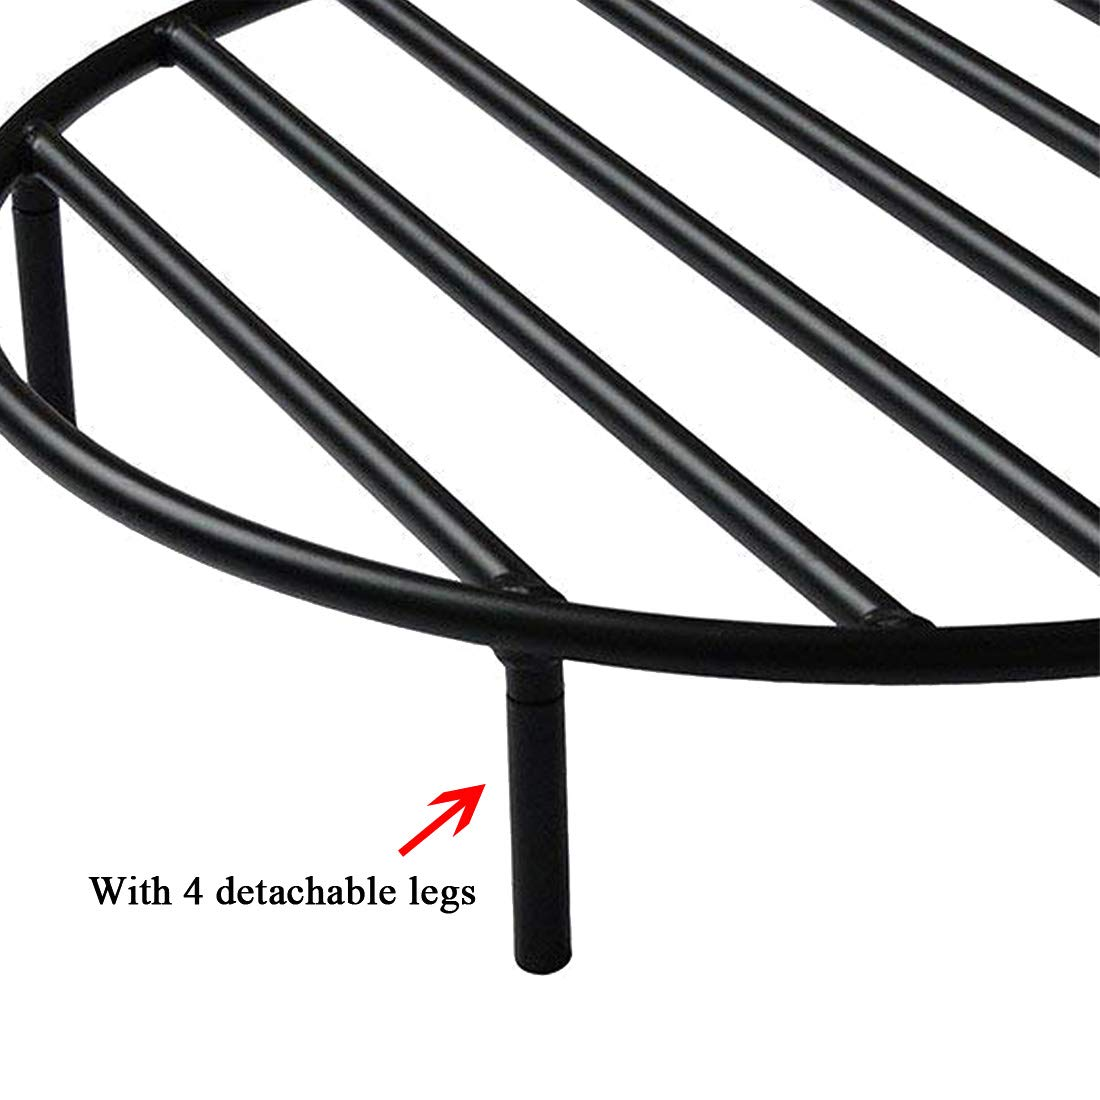 Onlyfire Round Fire Pit Grate with 4 Legs for Outdoor Campfire Grill Cooking 22 Inch